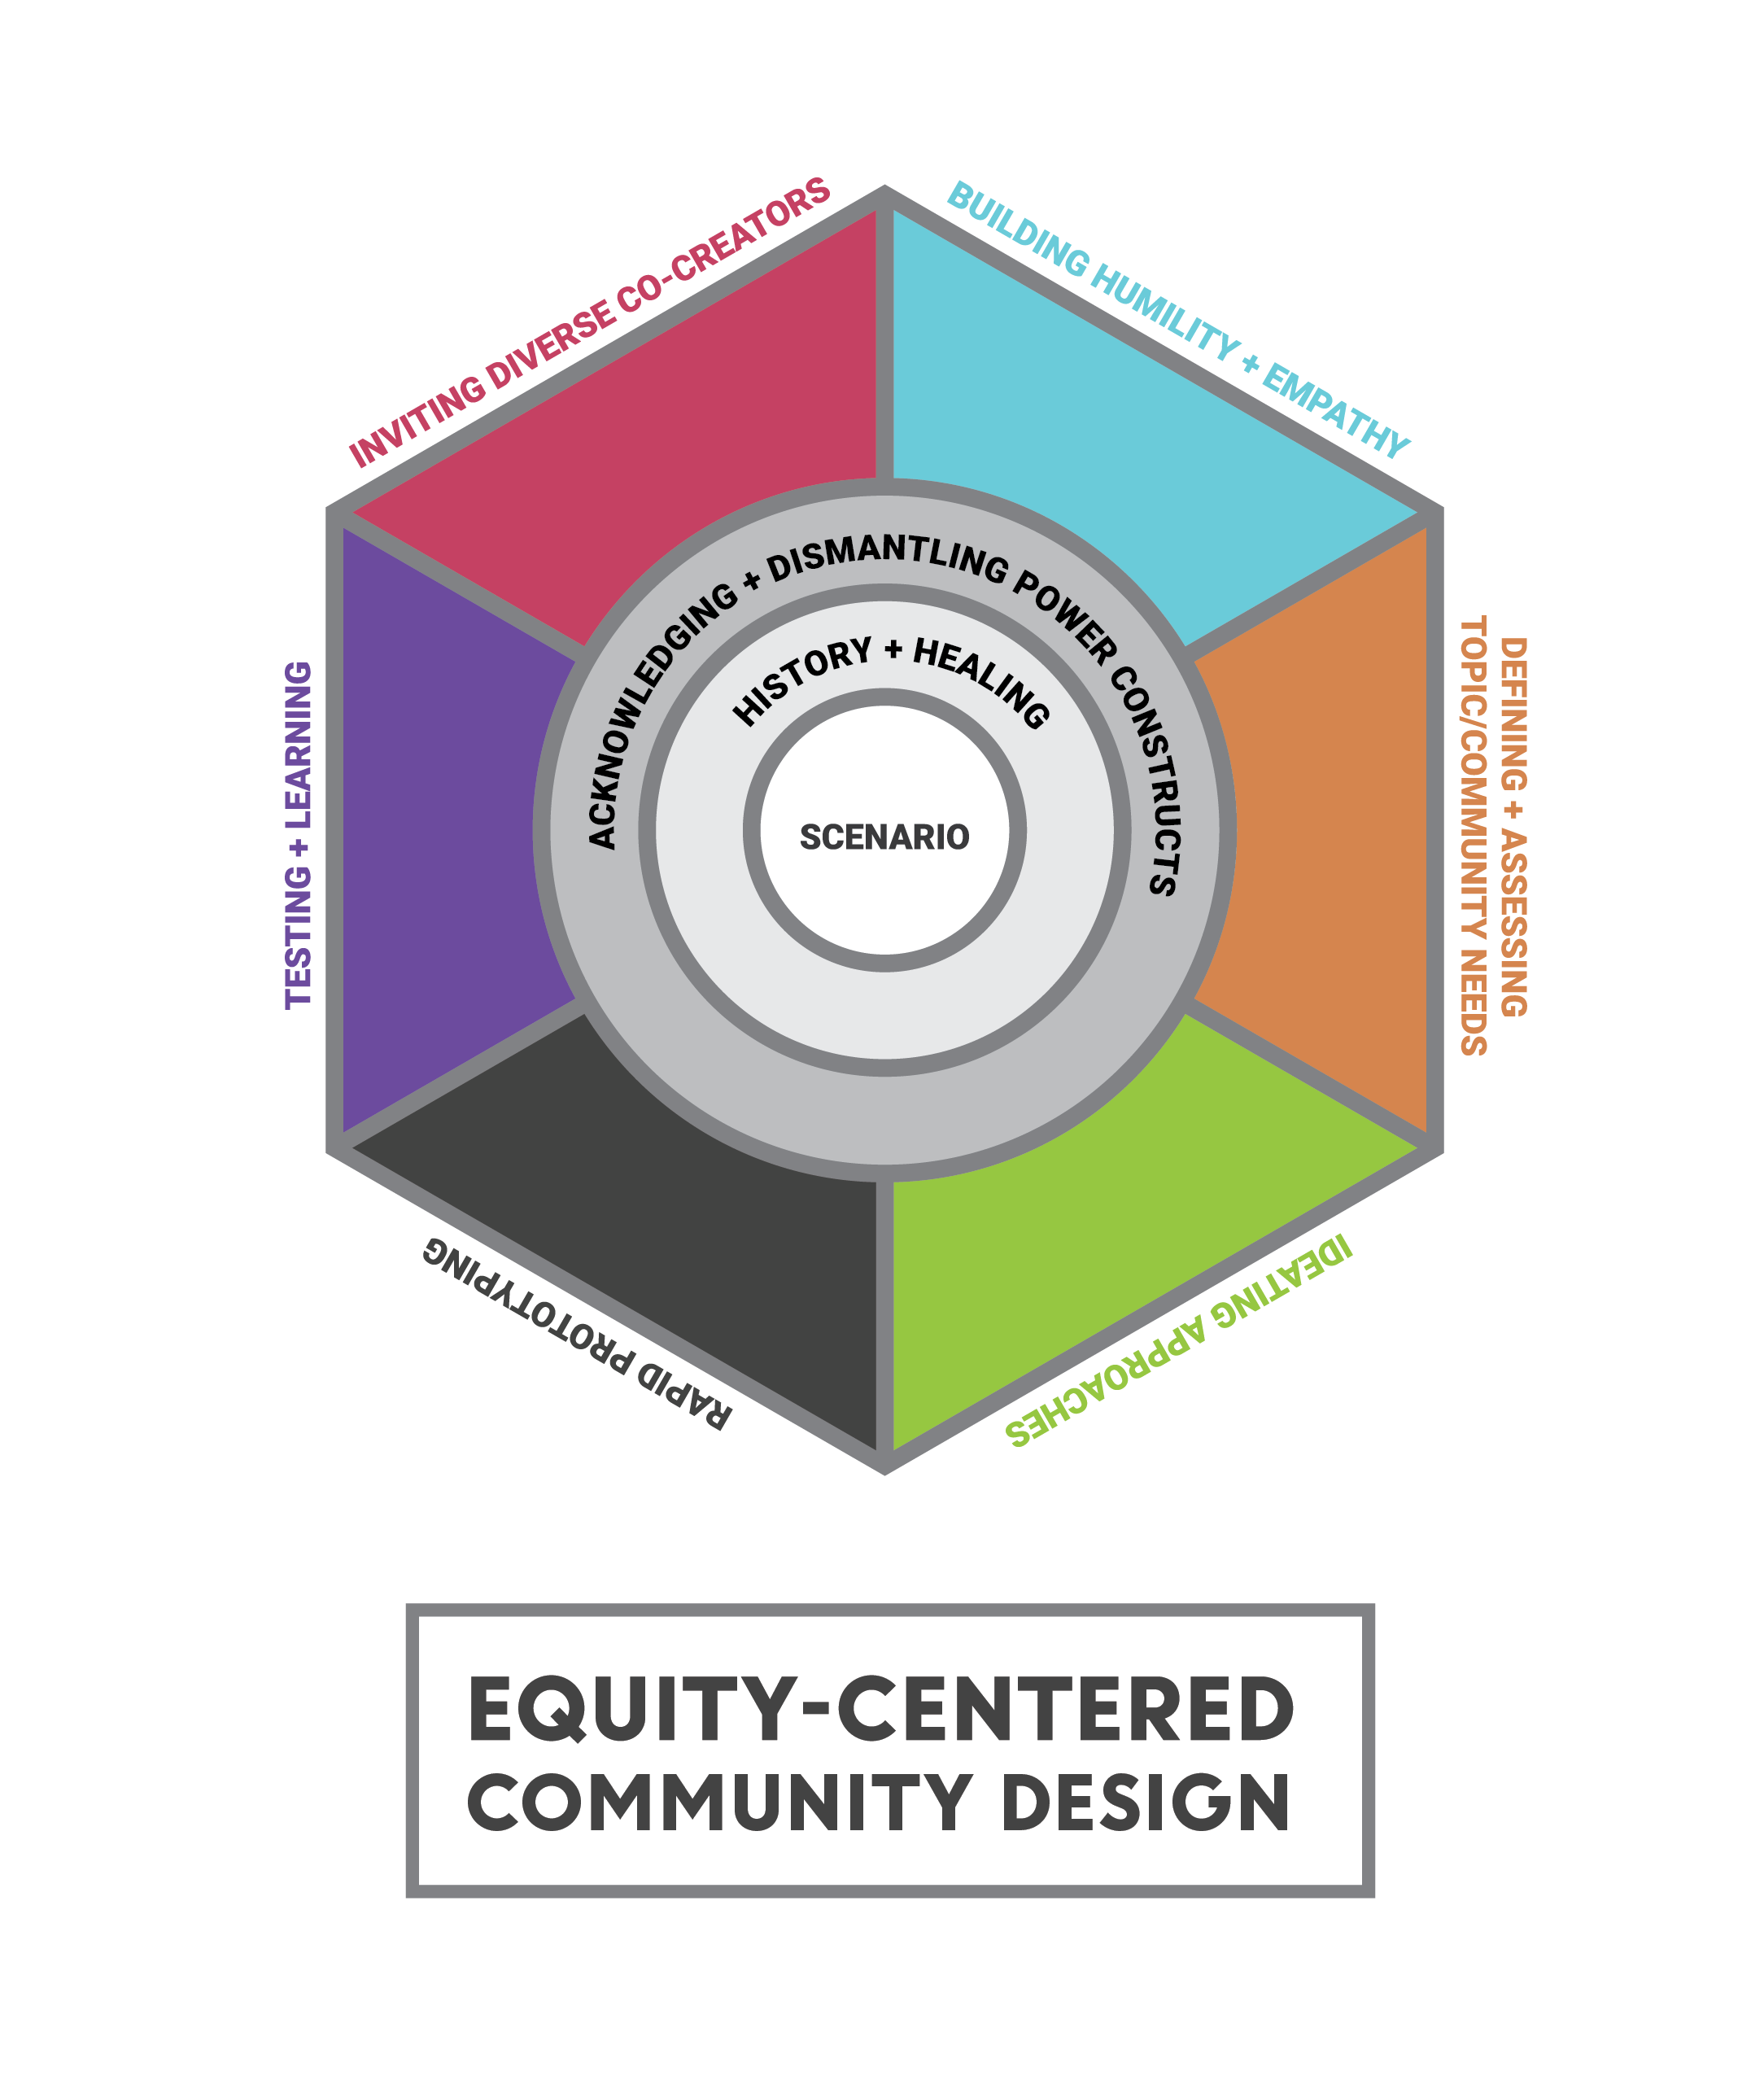 Image 1 - This is a hexagonal image that represents the iterative process of Equity-Centered Community Design. It features six color-coded pieces of the hexagon that show the various processes of the framework: Inviting Diverse Co-Creators, Building Humility and Empathy, Defining/Assessing Topic/Community Needs, Ideating Approaches, Rapid Prototyping, and Testing and Learning. In the center of the hexagon is a circle that represents the scenario or context. Encircling that circle is ring that reads: History & Healing. Encircling that ring is a ring that reads: Acknowledging and Dismantling Power Constructs.